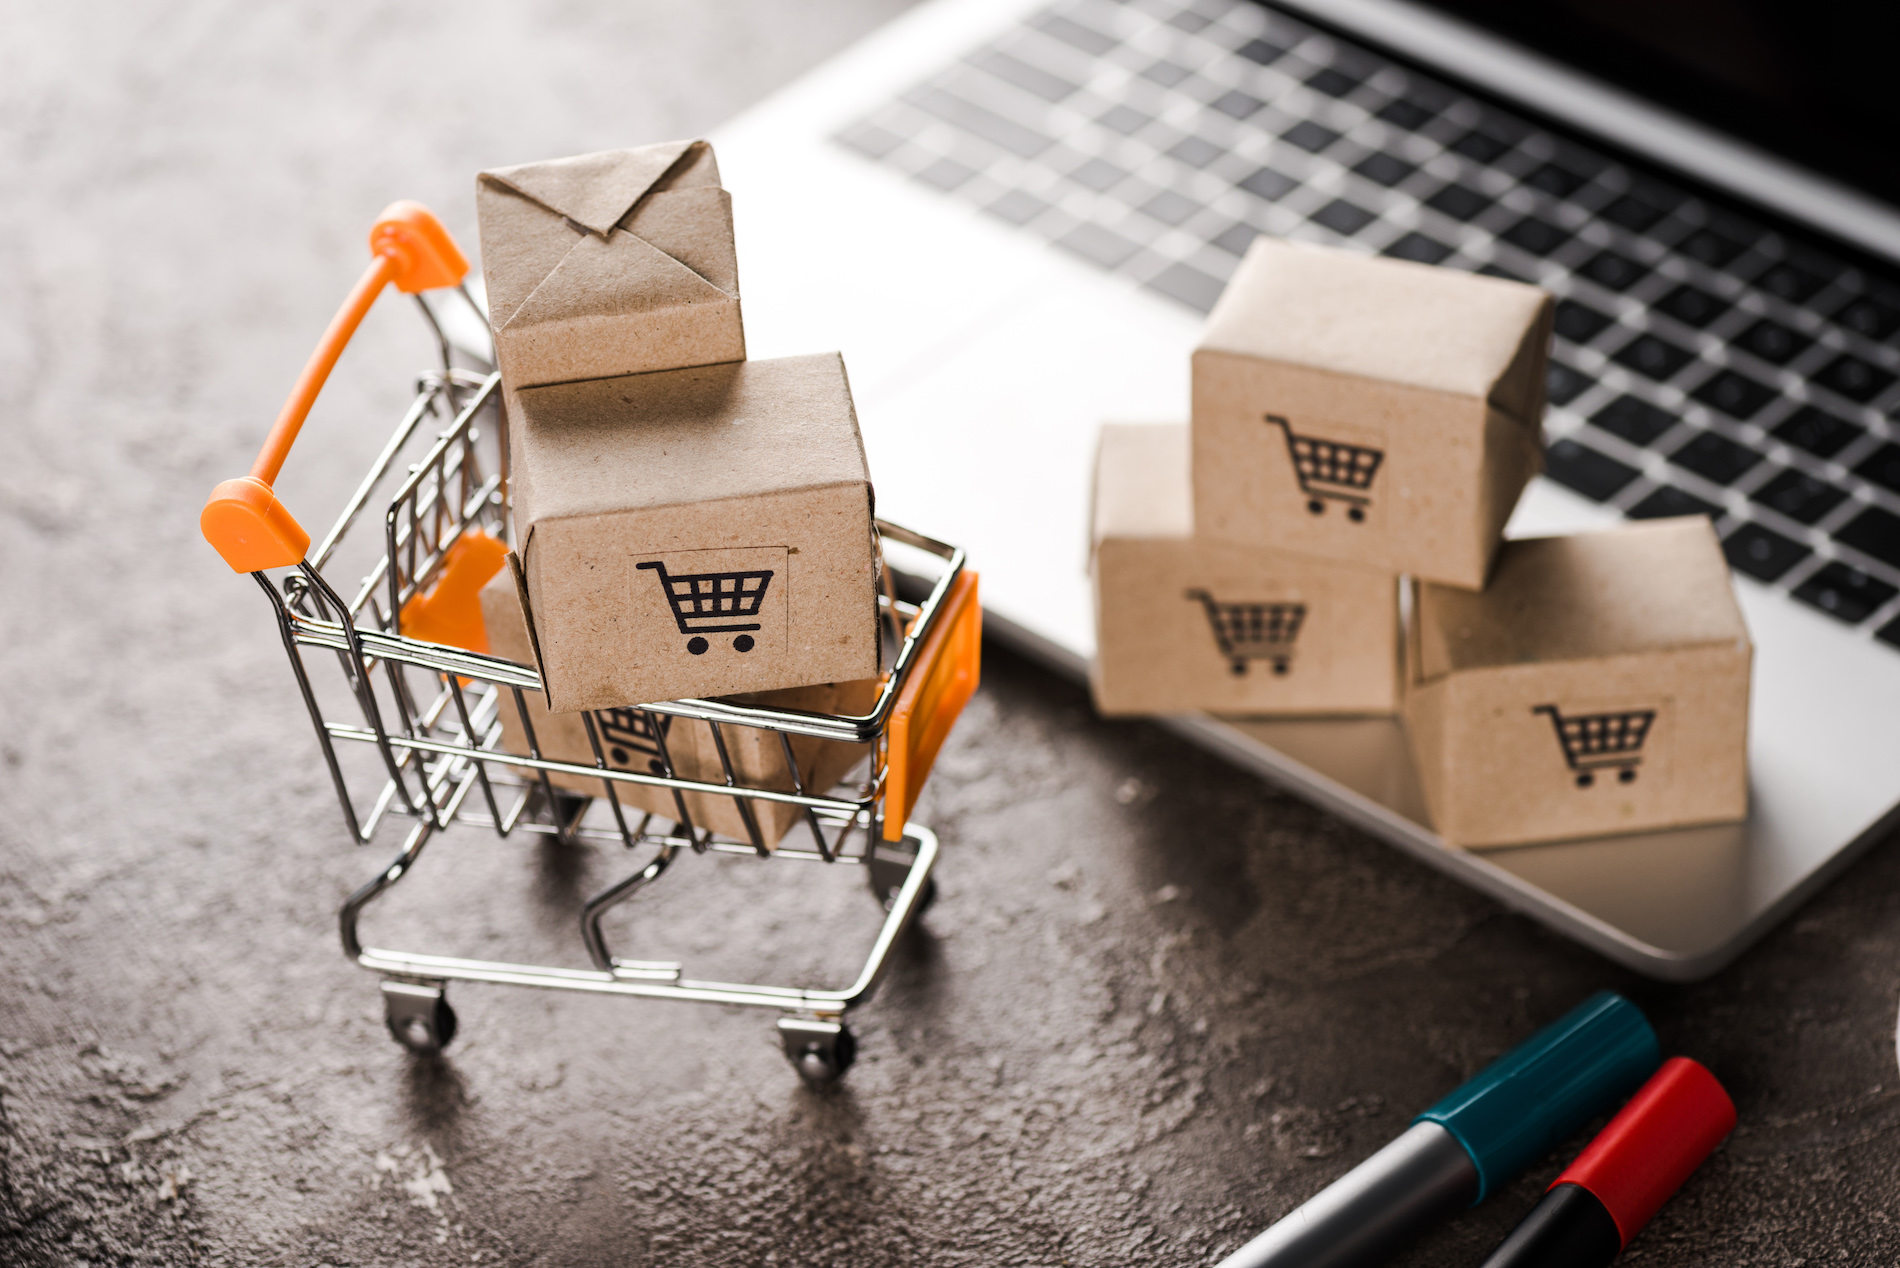 UAE and KSA account for 75 percent of total e-commerce sales in 2020